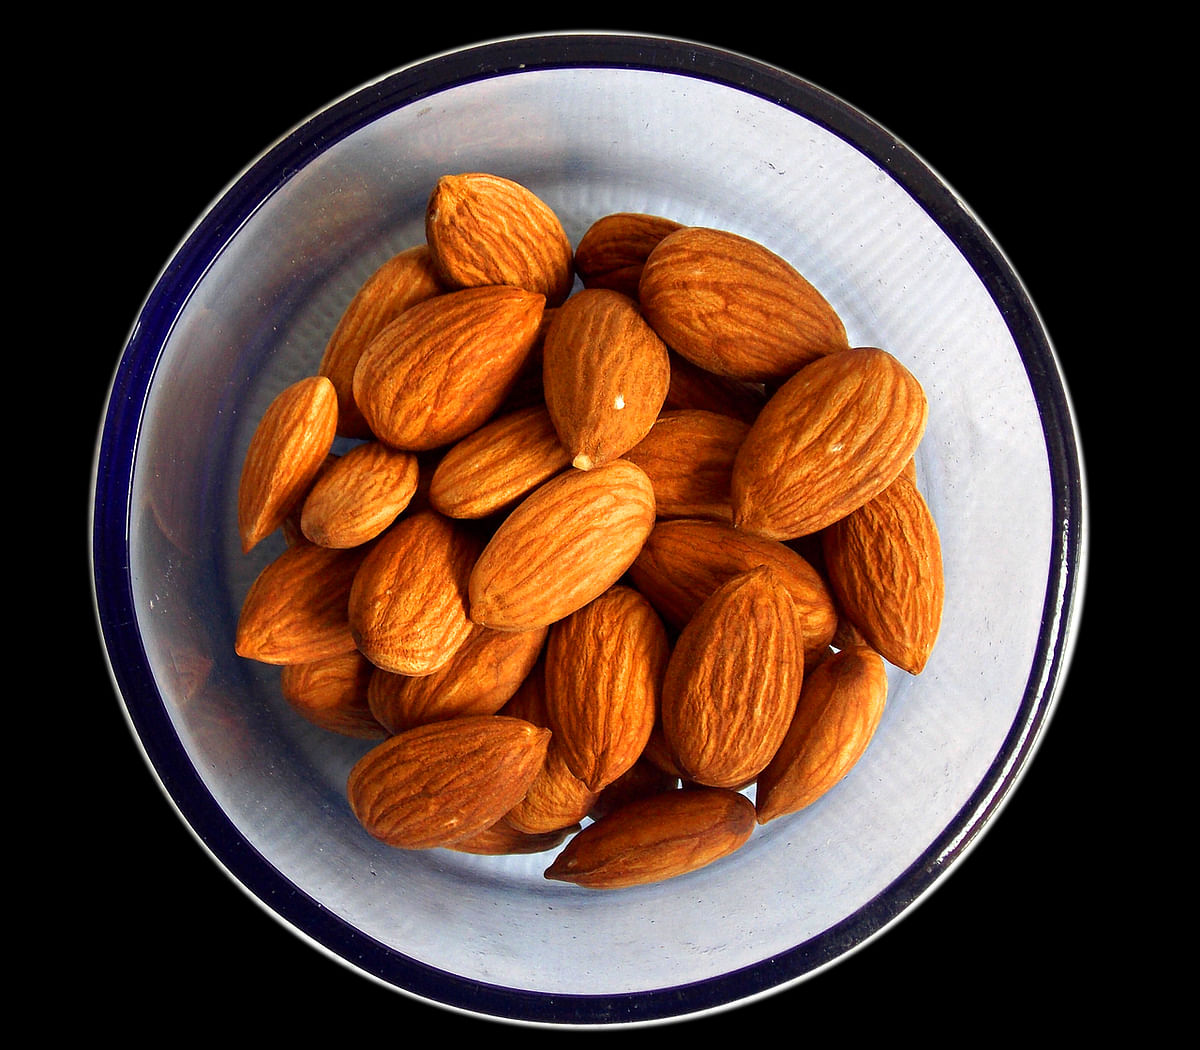 बादाम के फायदे और नुकसान - Almond Benefits and Side Effects in Hindi